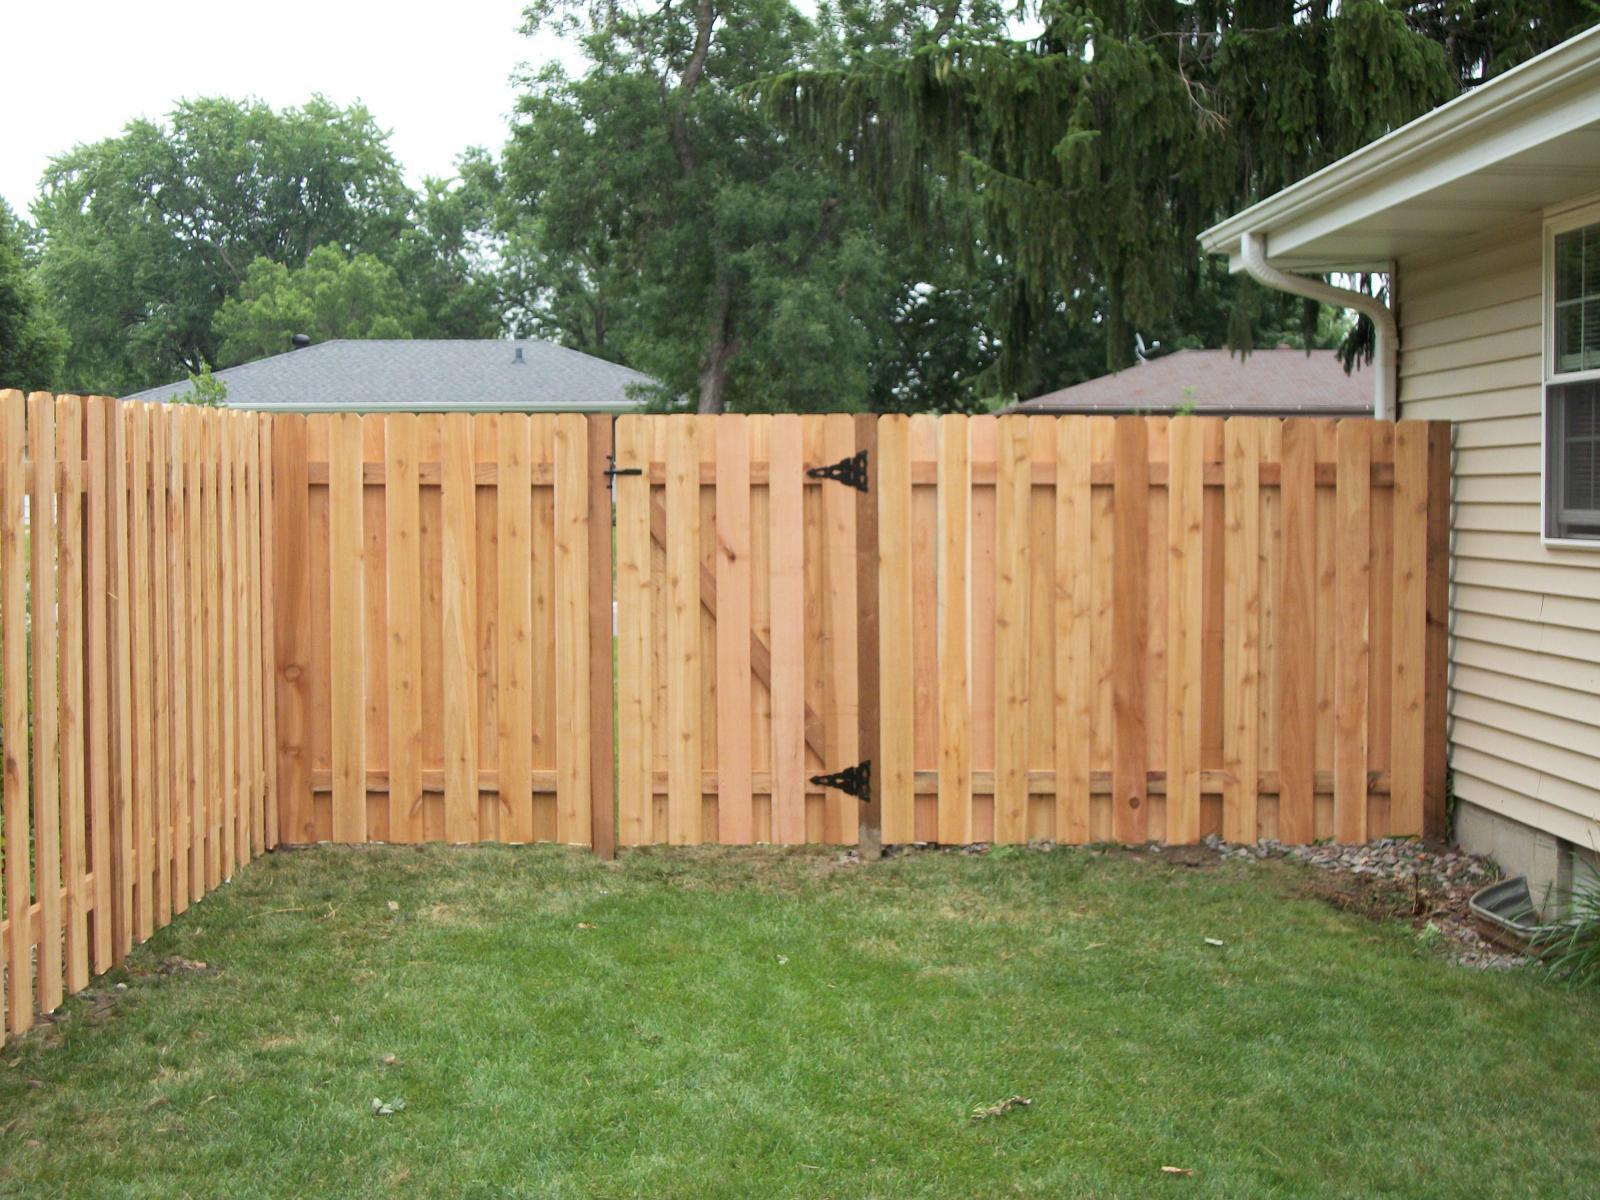 dog eared alternate board privacy fence minneapolis mn